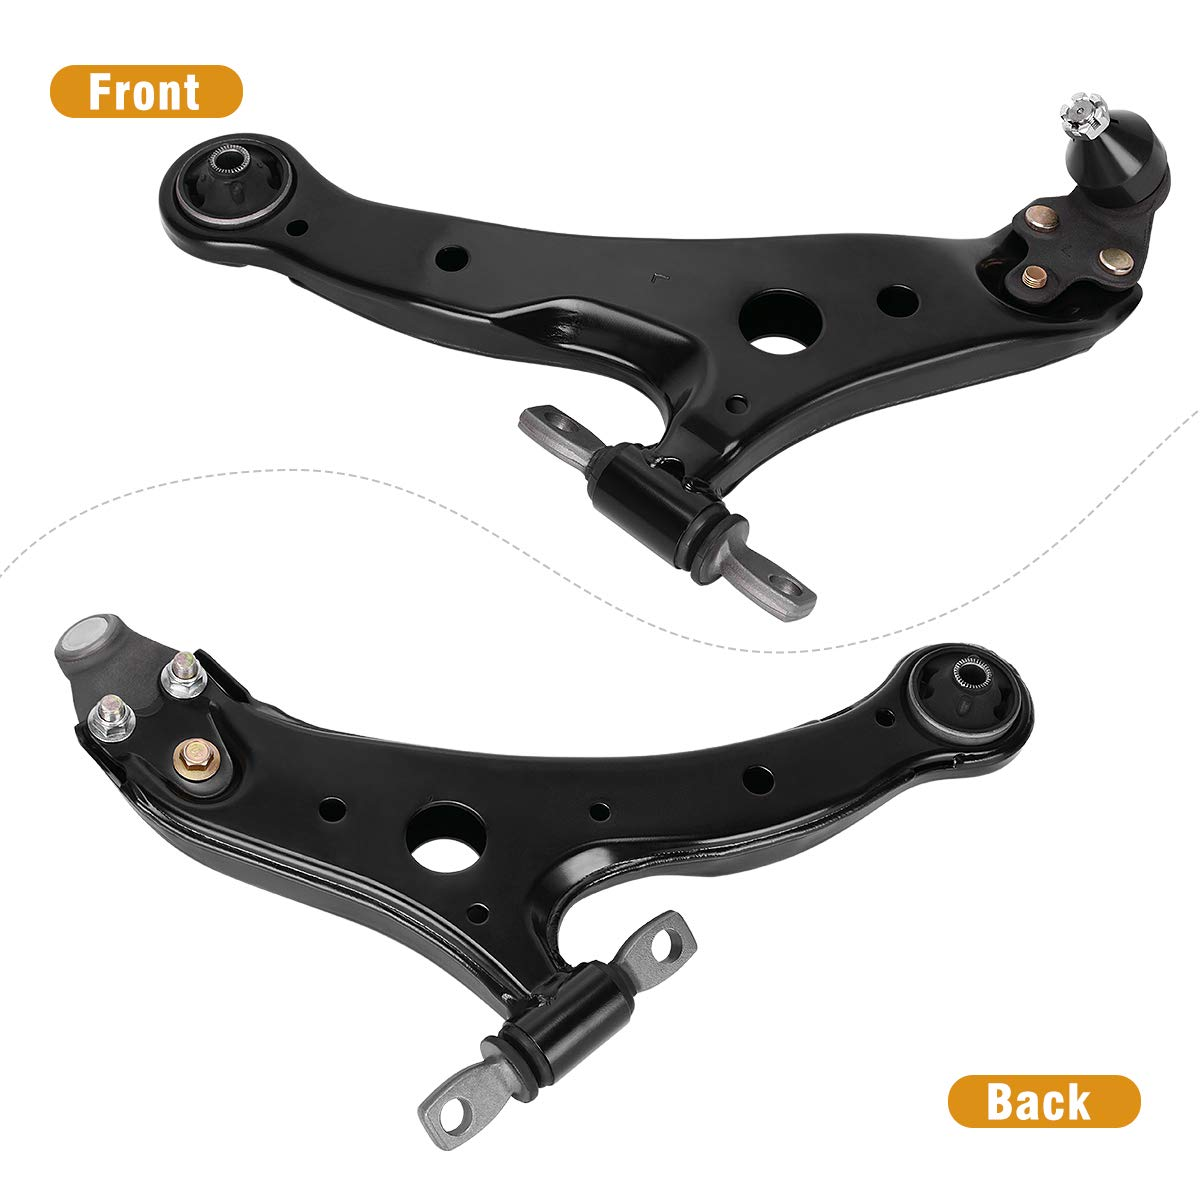 2001-2012 Toyota Avalon Camry Highlander Solara Front Lower Control Arm w//Ball Joint Assembly for 2002-2011 Lexus ES300 ES330 ES350 RX330 RX350 RX400h